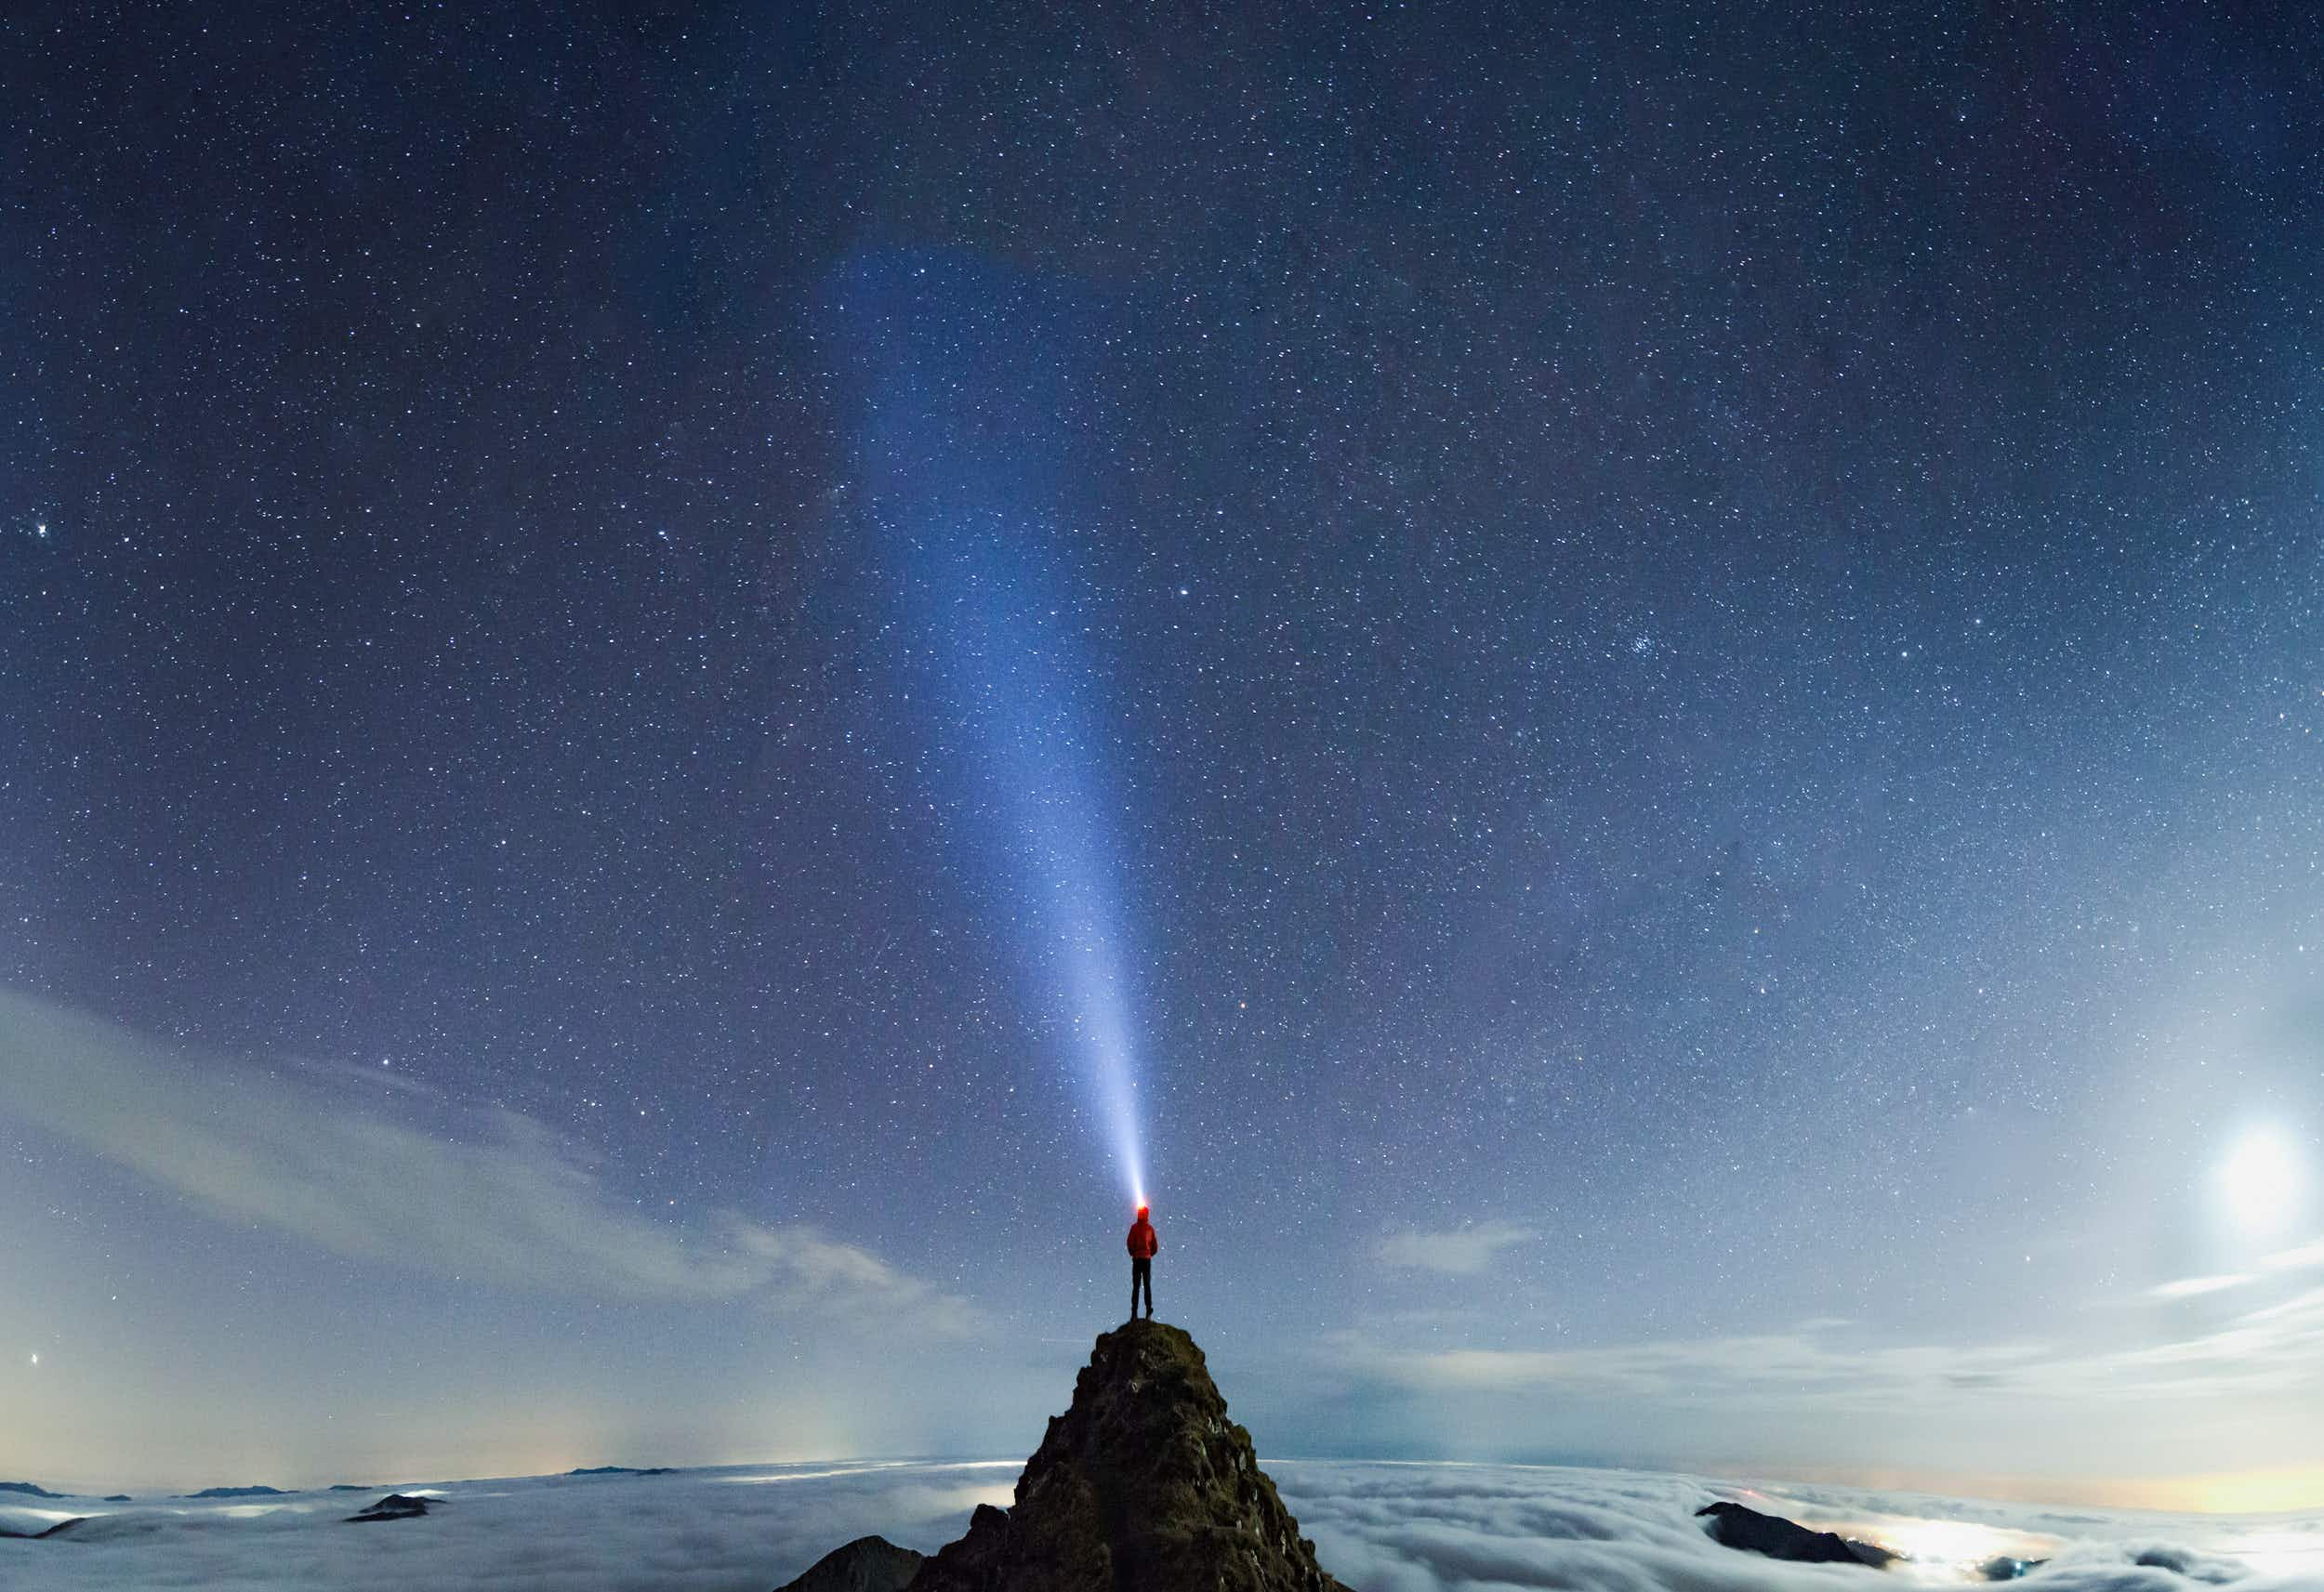 Epic selfies: photographer takes spectacular shots in Snowdonia